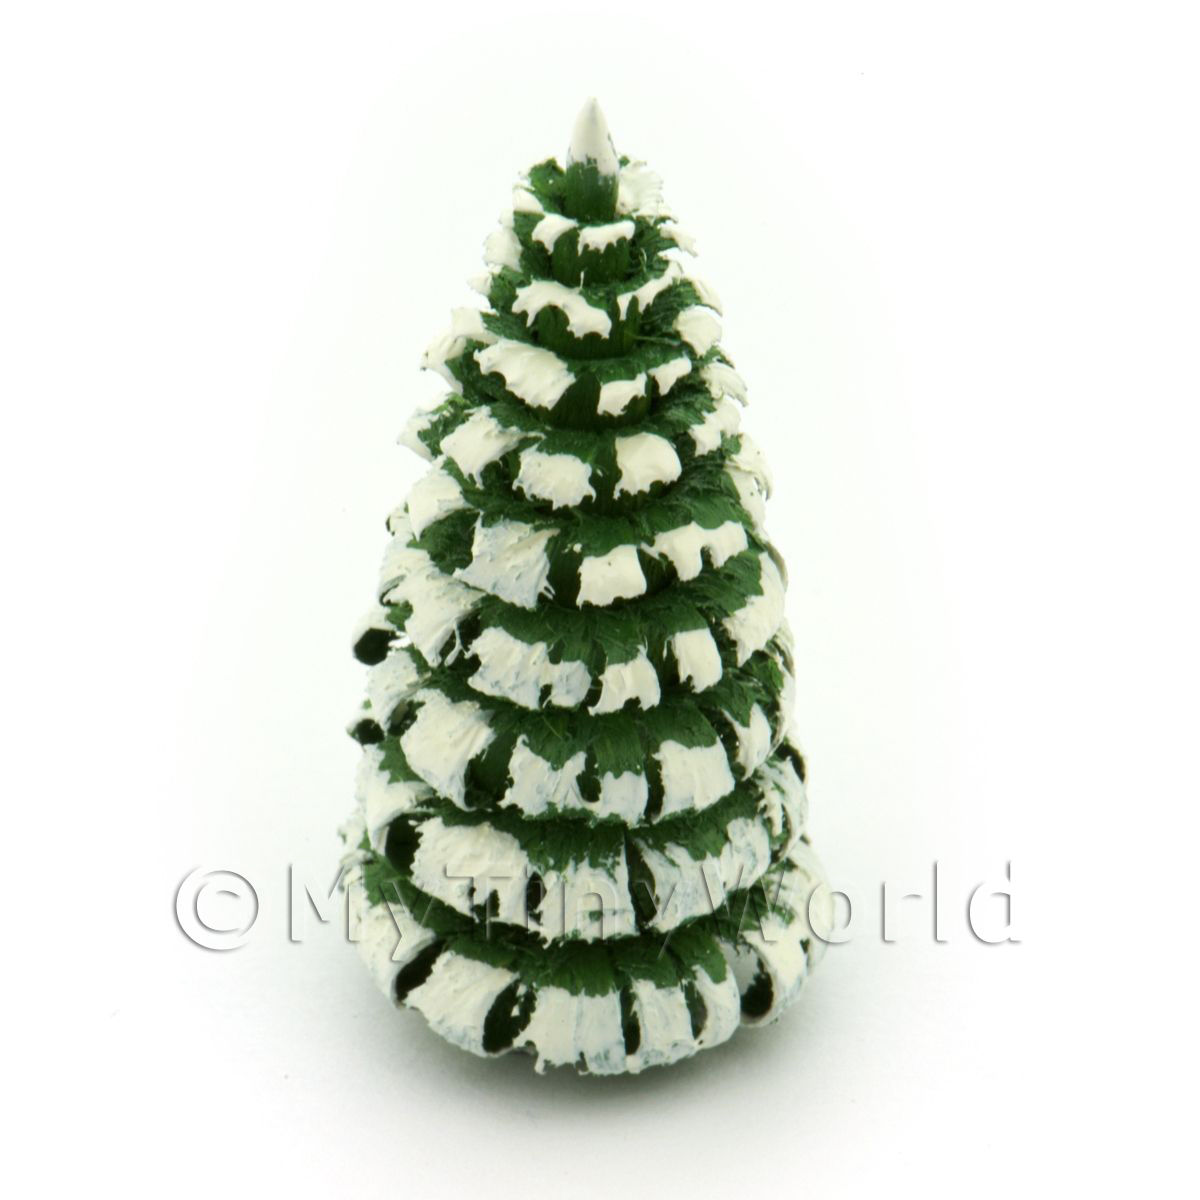 Dolls House Miniature 40mm Snow Tree